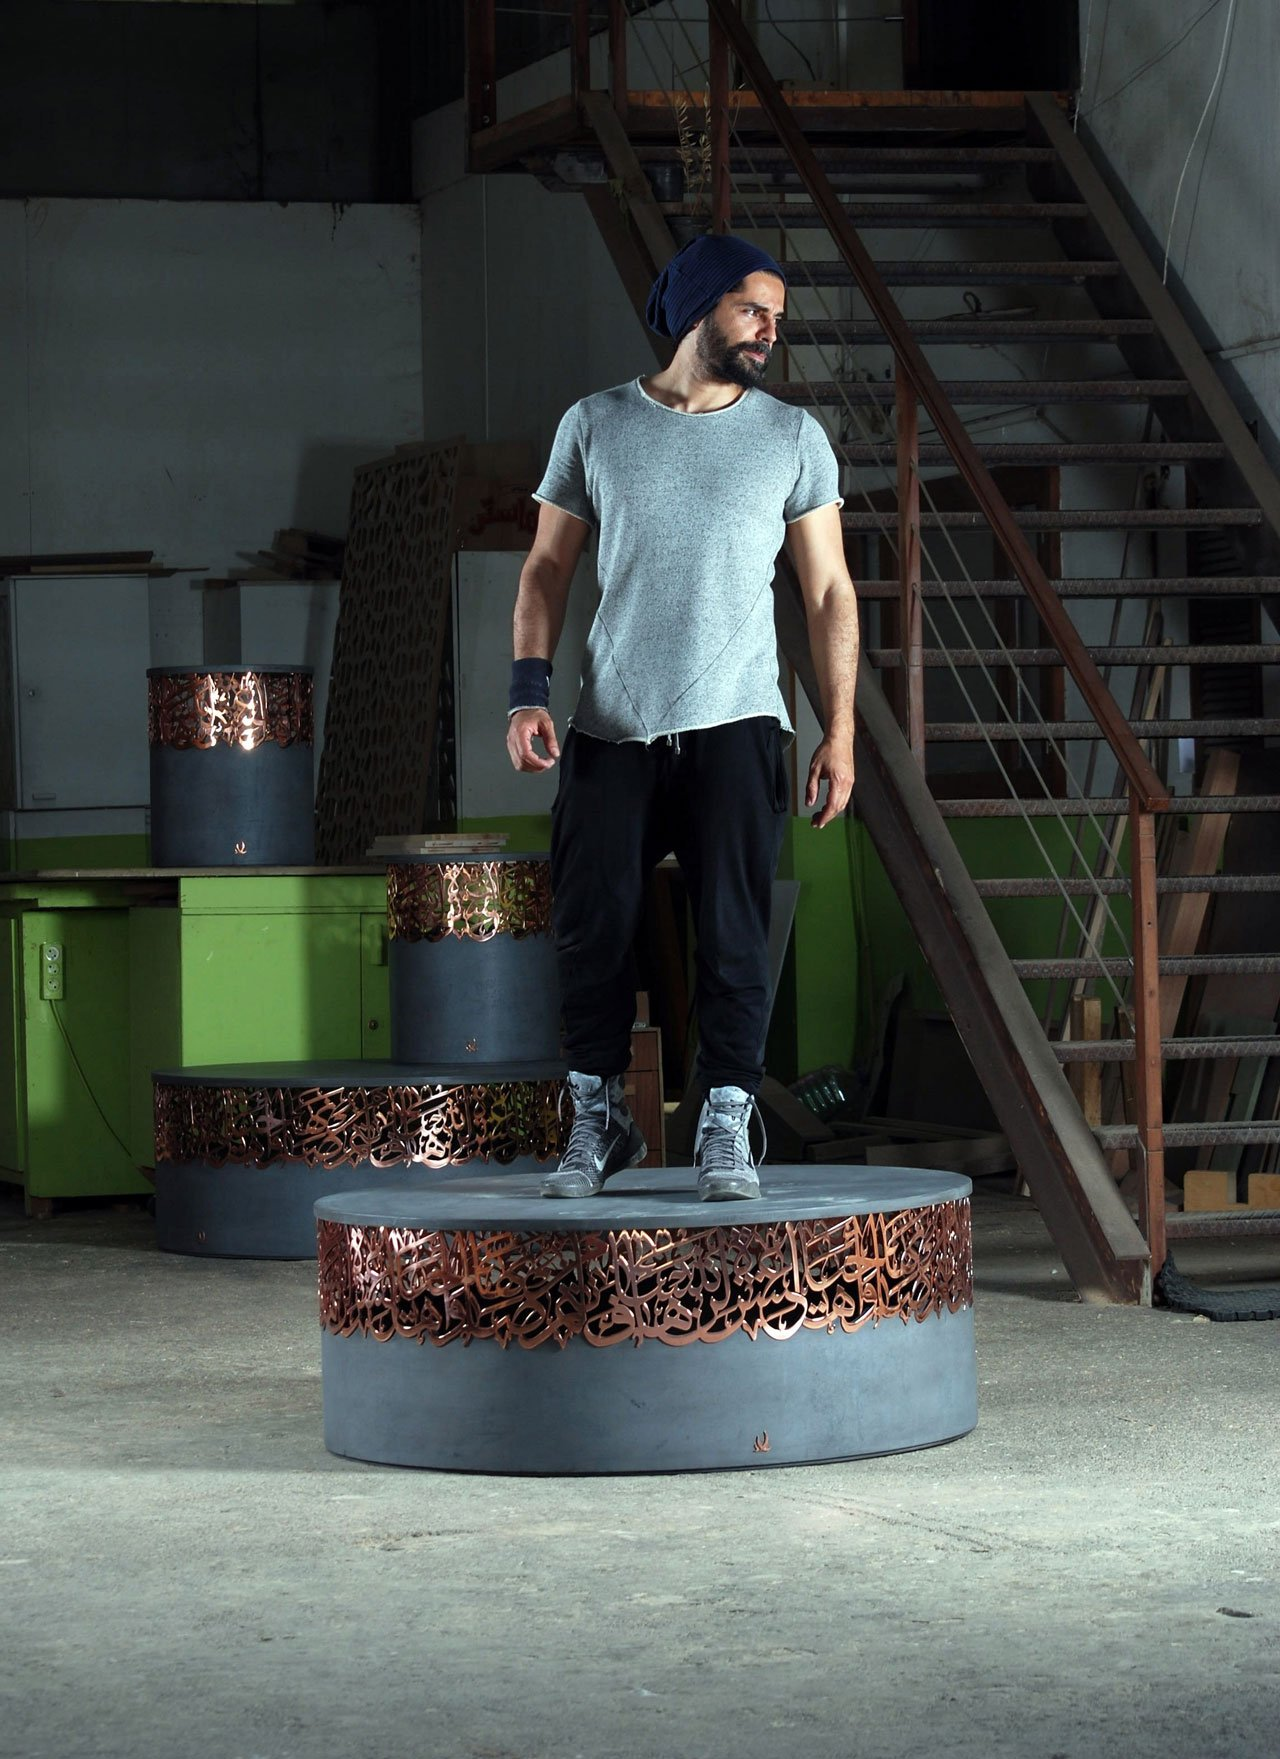 Beirut-based Iyad Naja explored the reinvention of the table/stool ato'de roseboutique in Dubai.